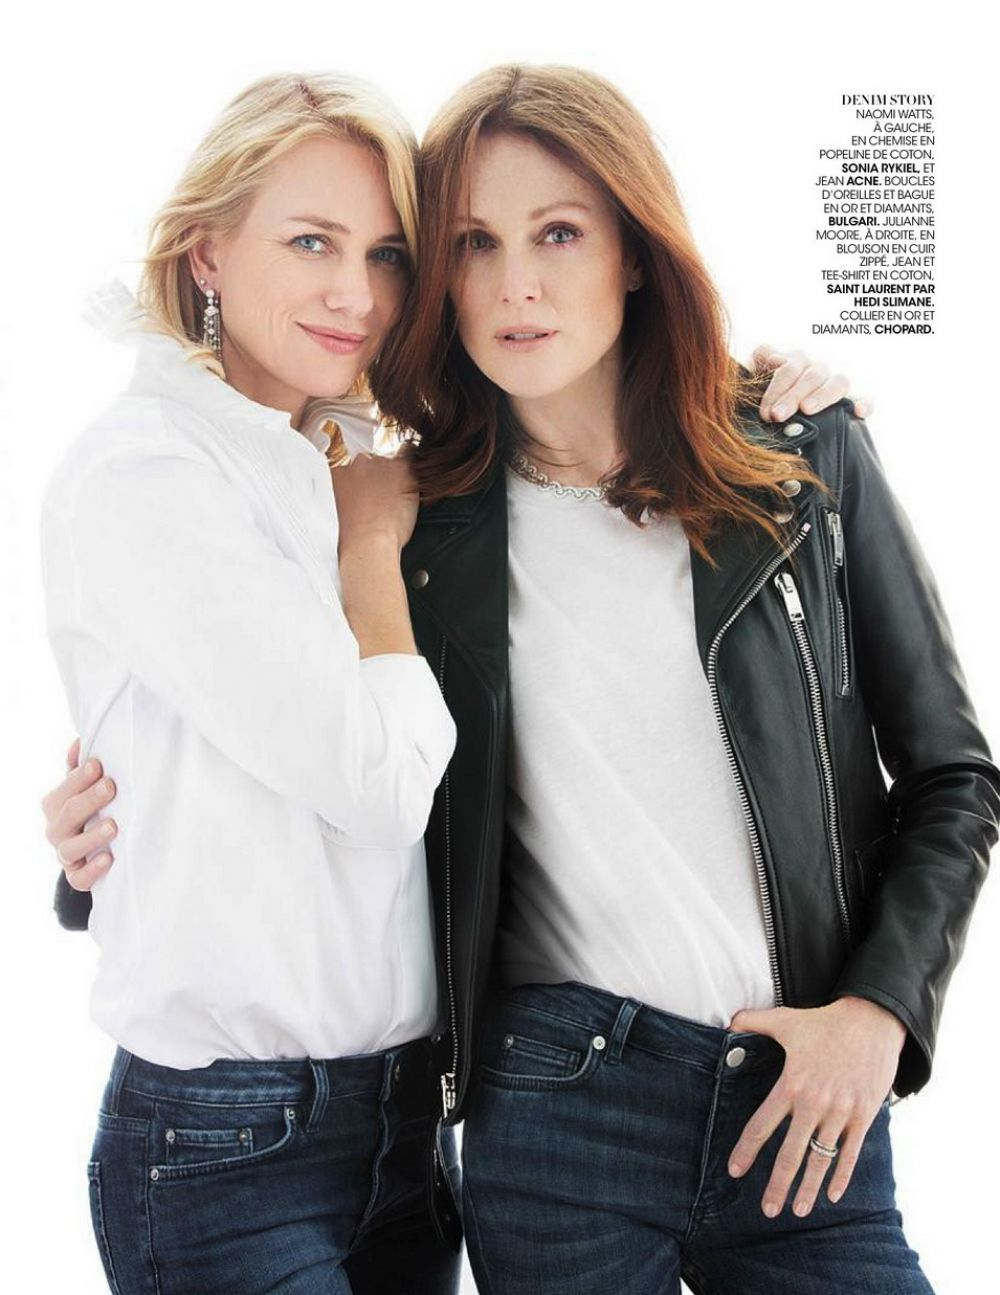 JULIANNE MOORE and NAOMIWATTS in Madame Figaro Magazine, November 2015 Issue